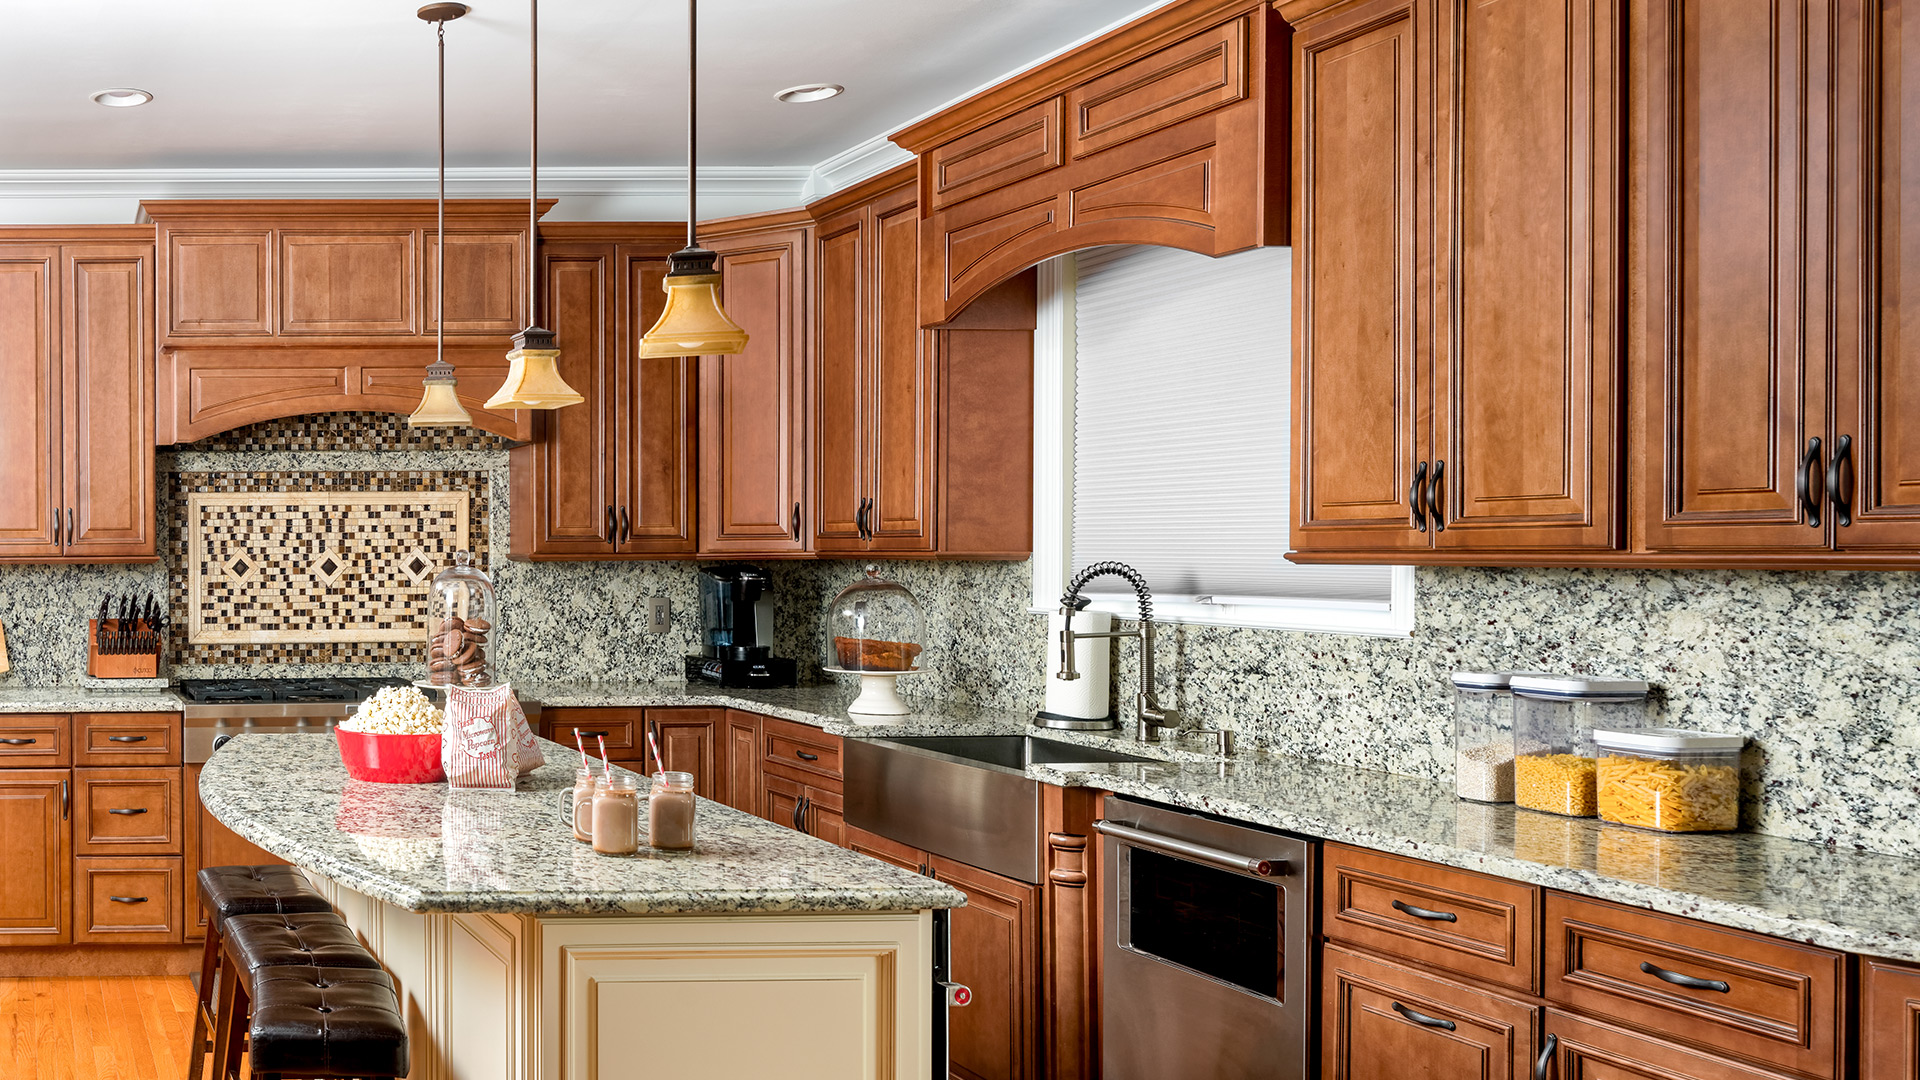 If you're leaning towards a traditional and classy kitchen, the Wellington Cinnamon cabinets are a perfect choice!